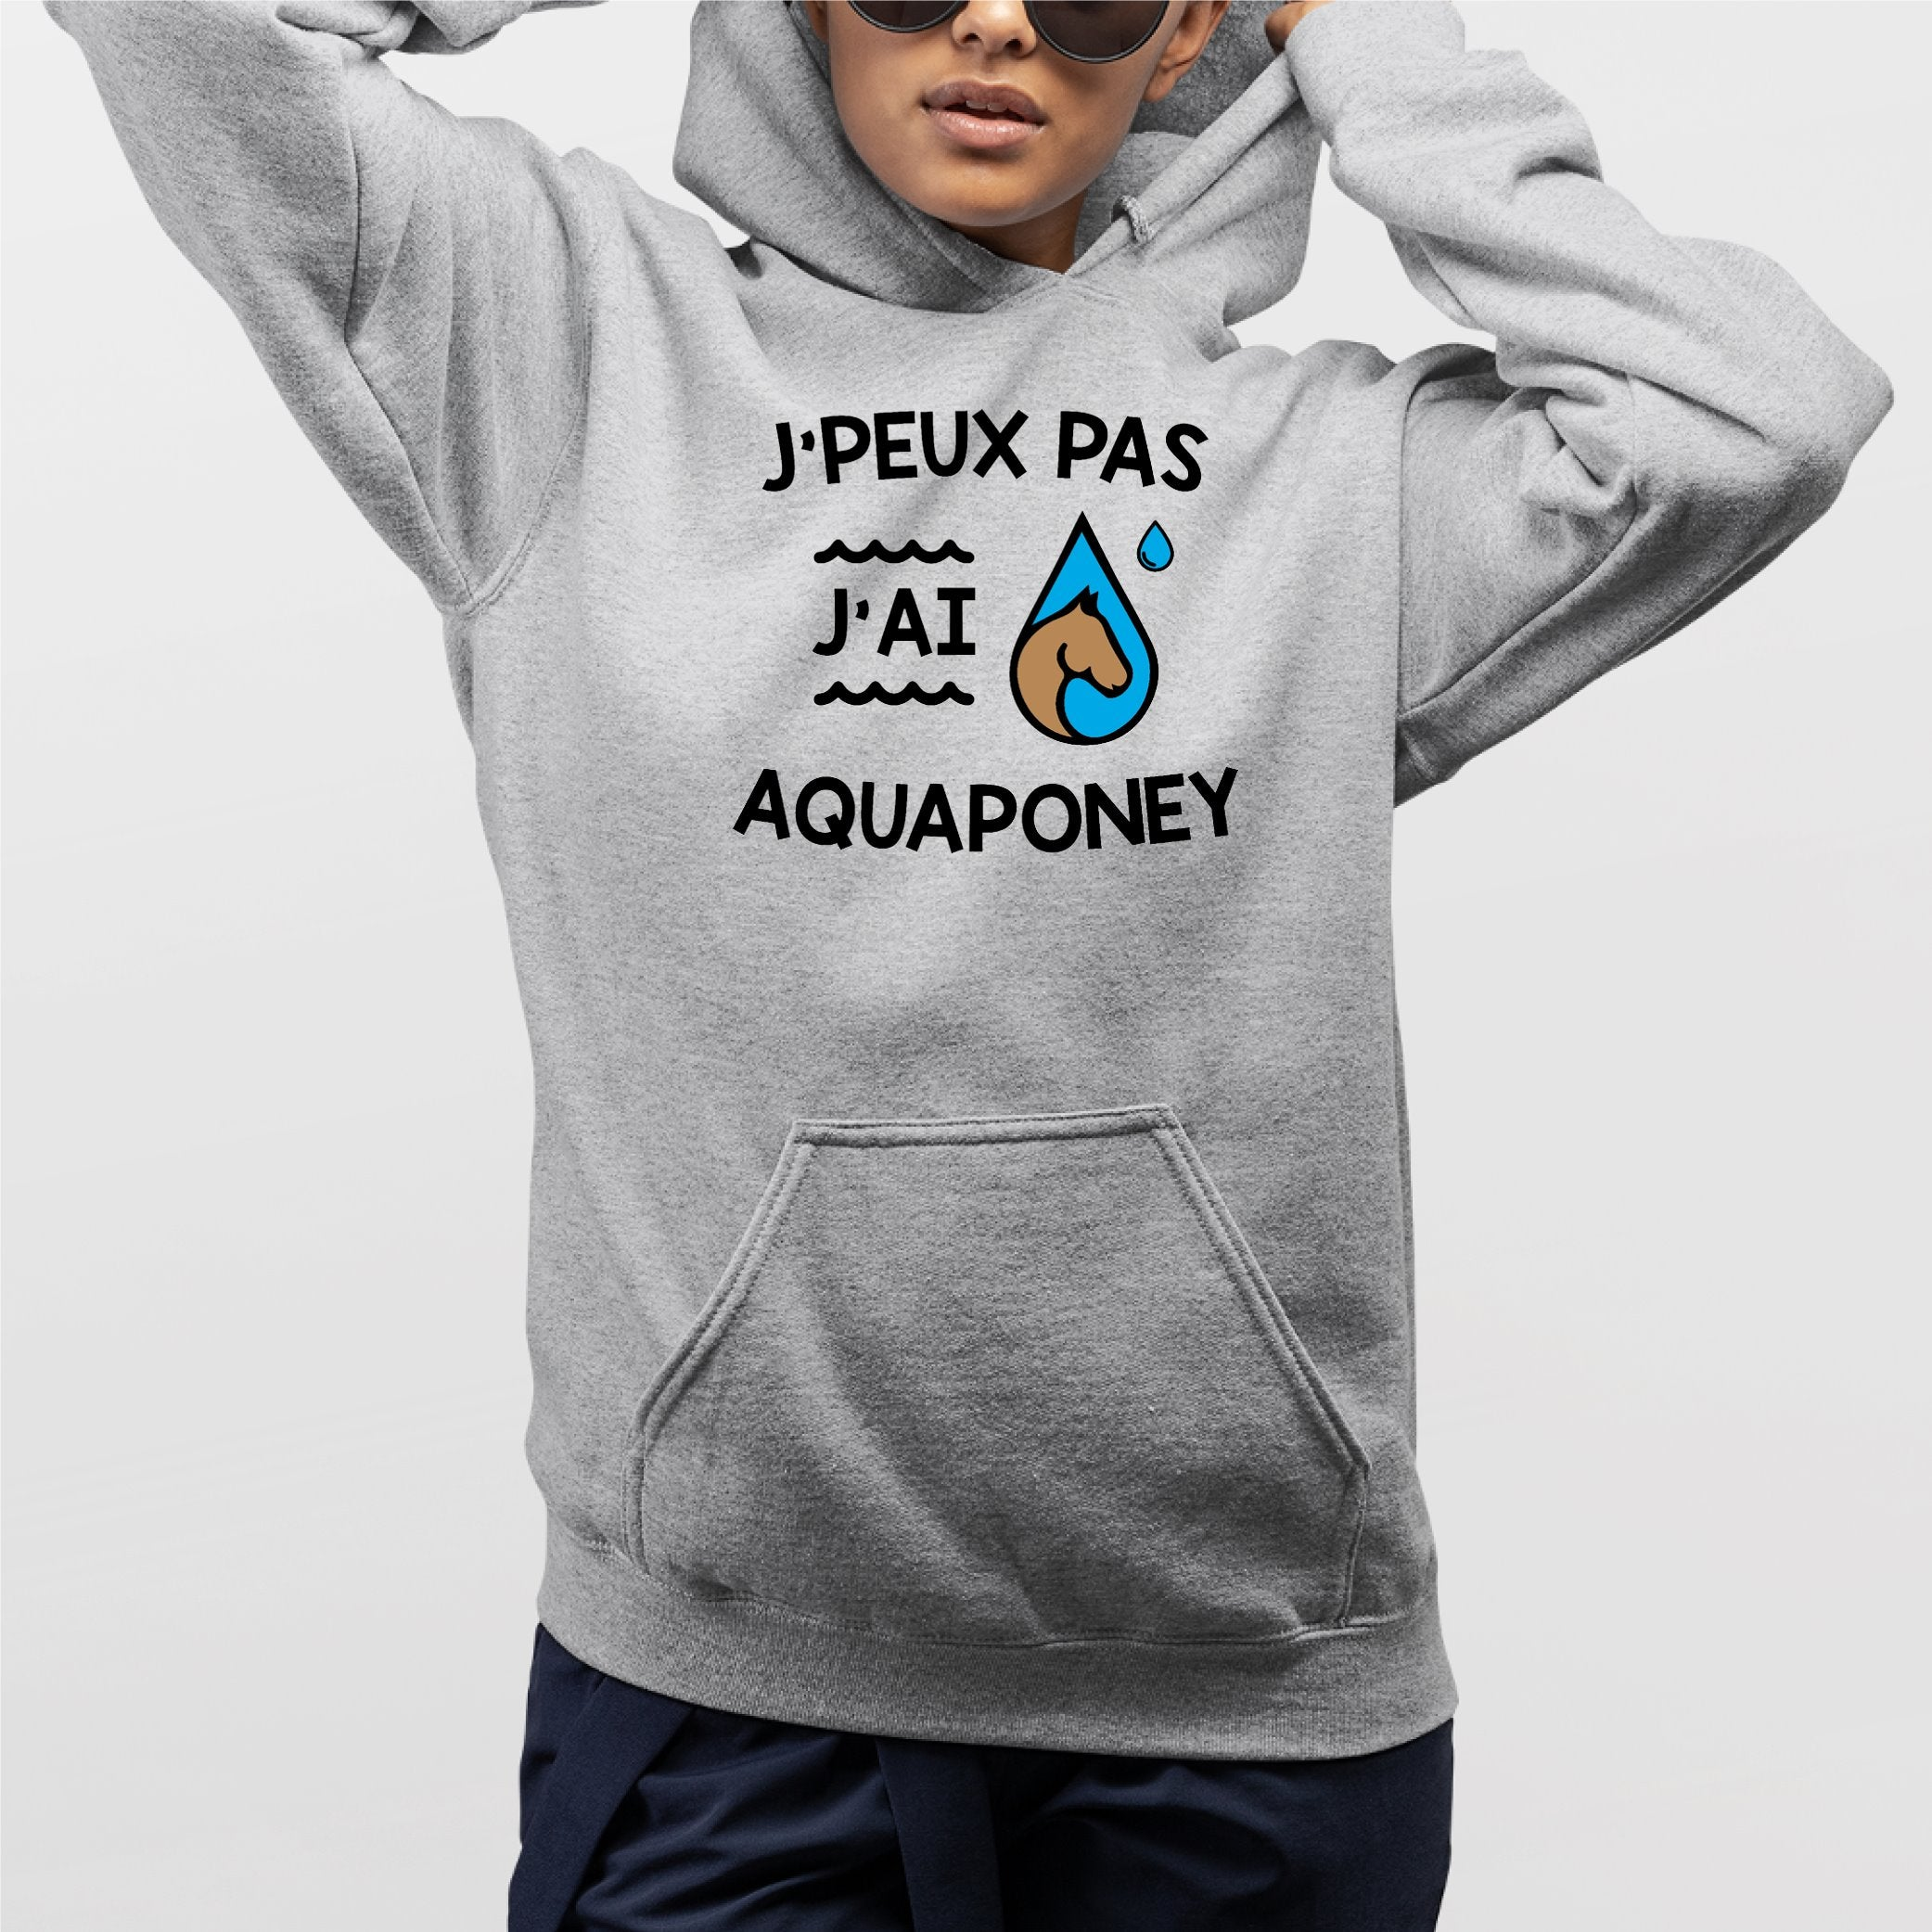 Sweat Capuche Adulte J'peux pas j'ai aquaponey Gris